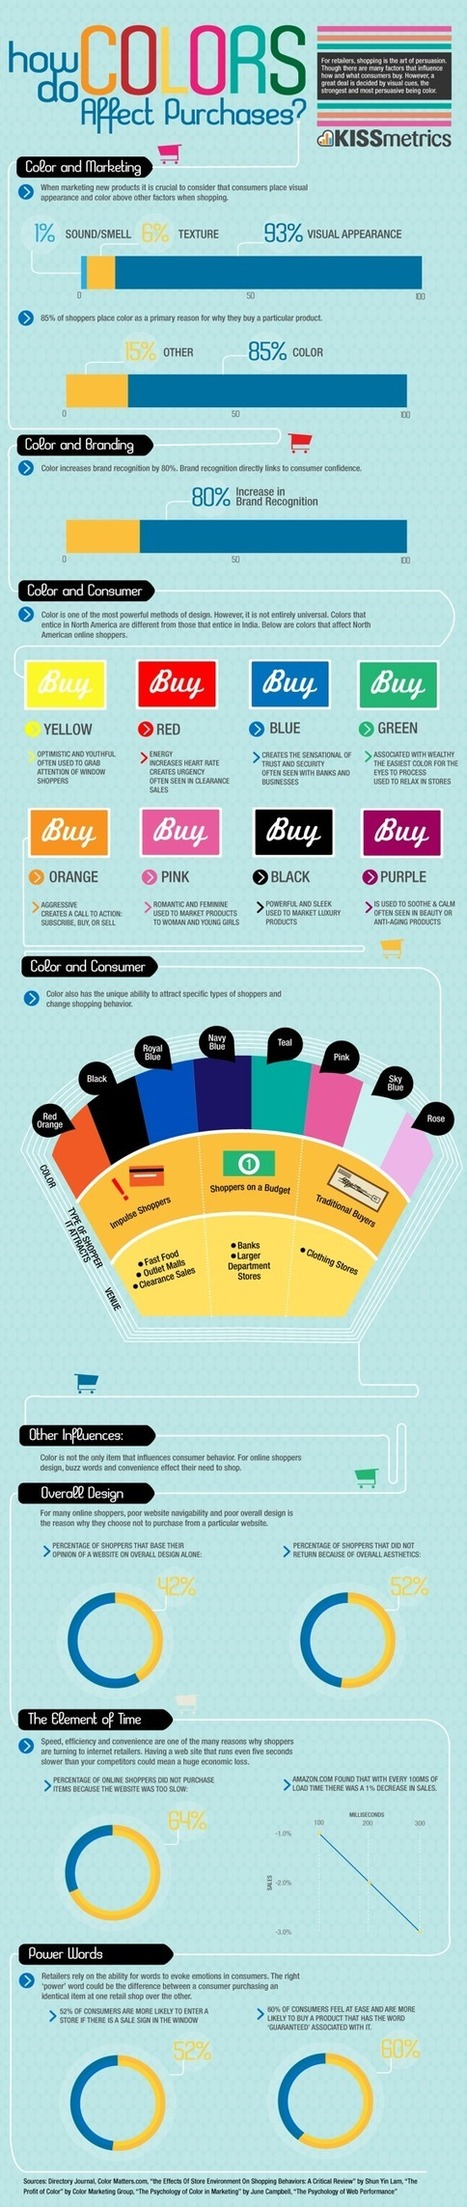 How do colors affect purchases? | Everything Pinterest | Scoop.it